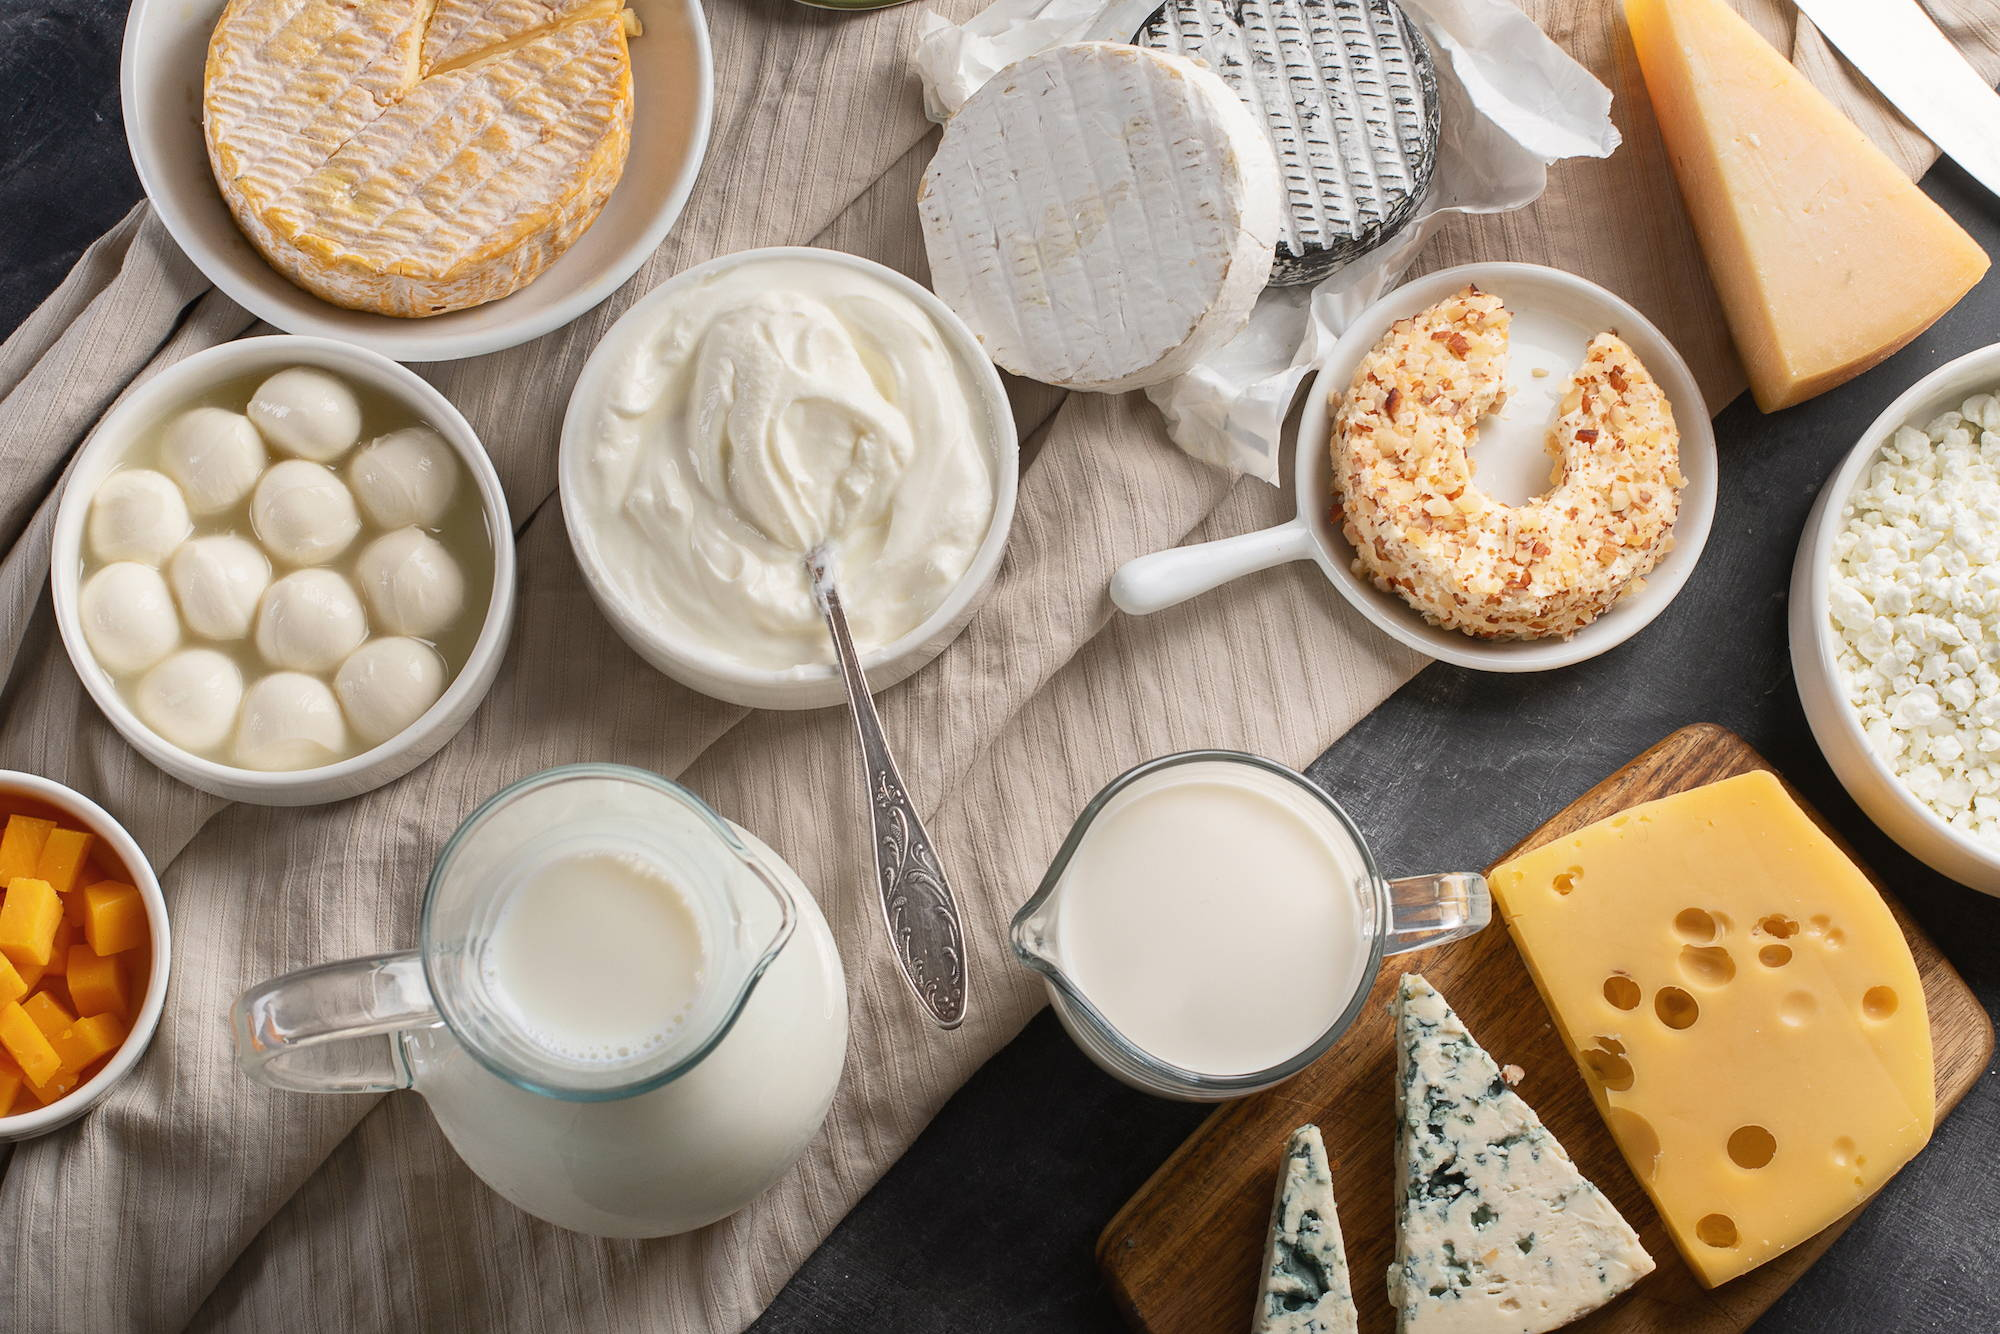 Image of dairy rich foods